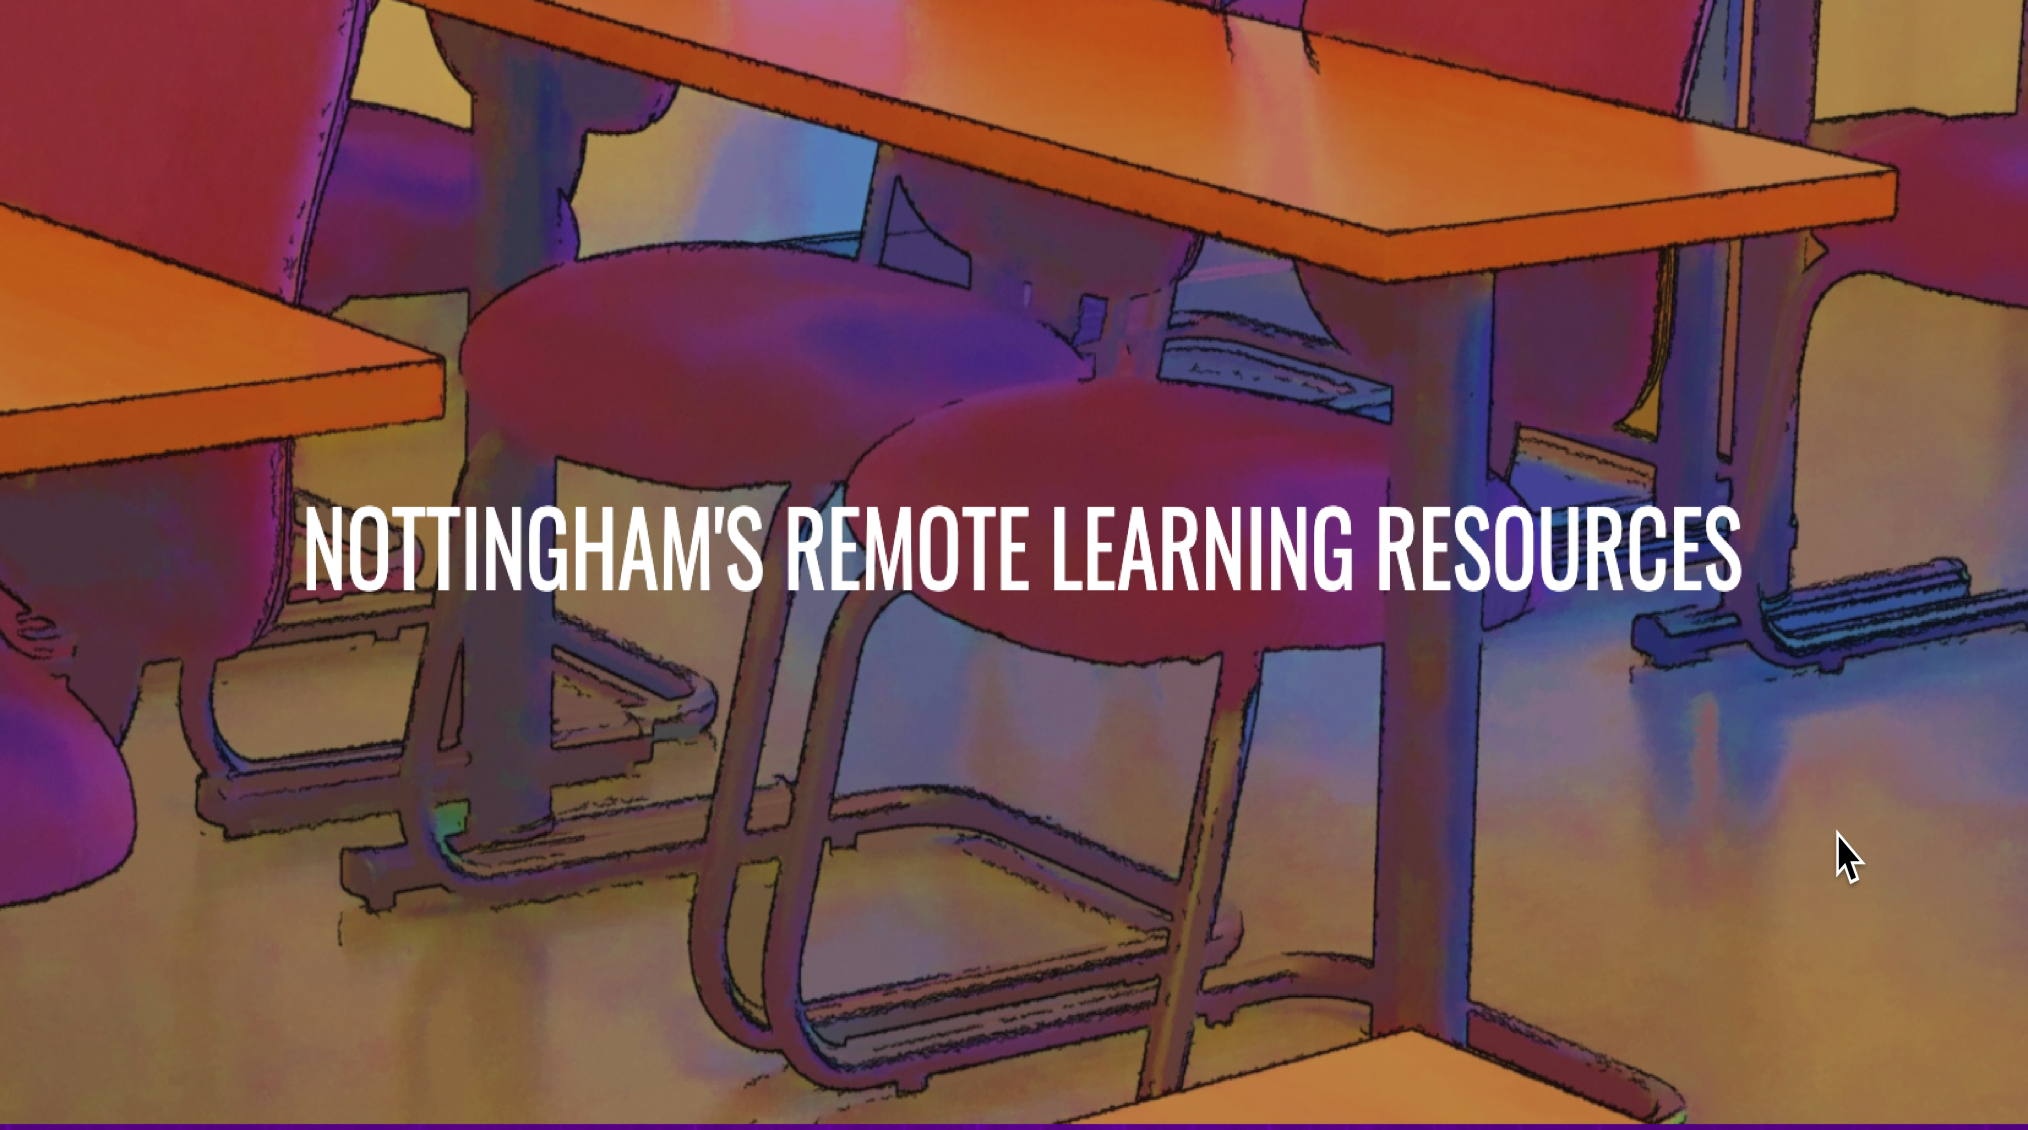 Nottingham's Remote Learning Resources